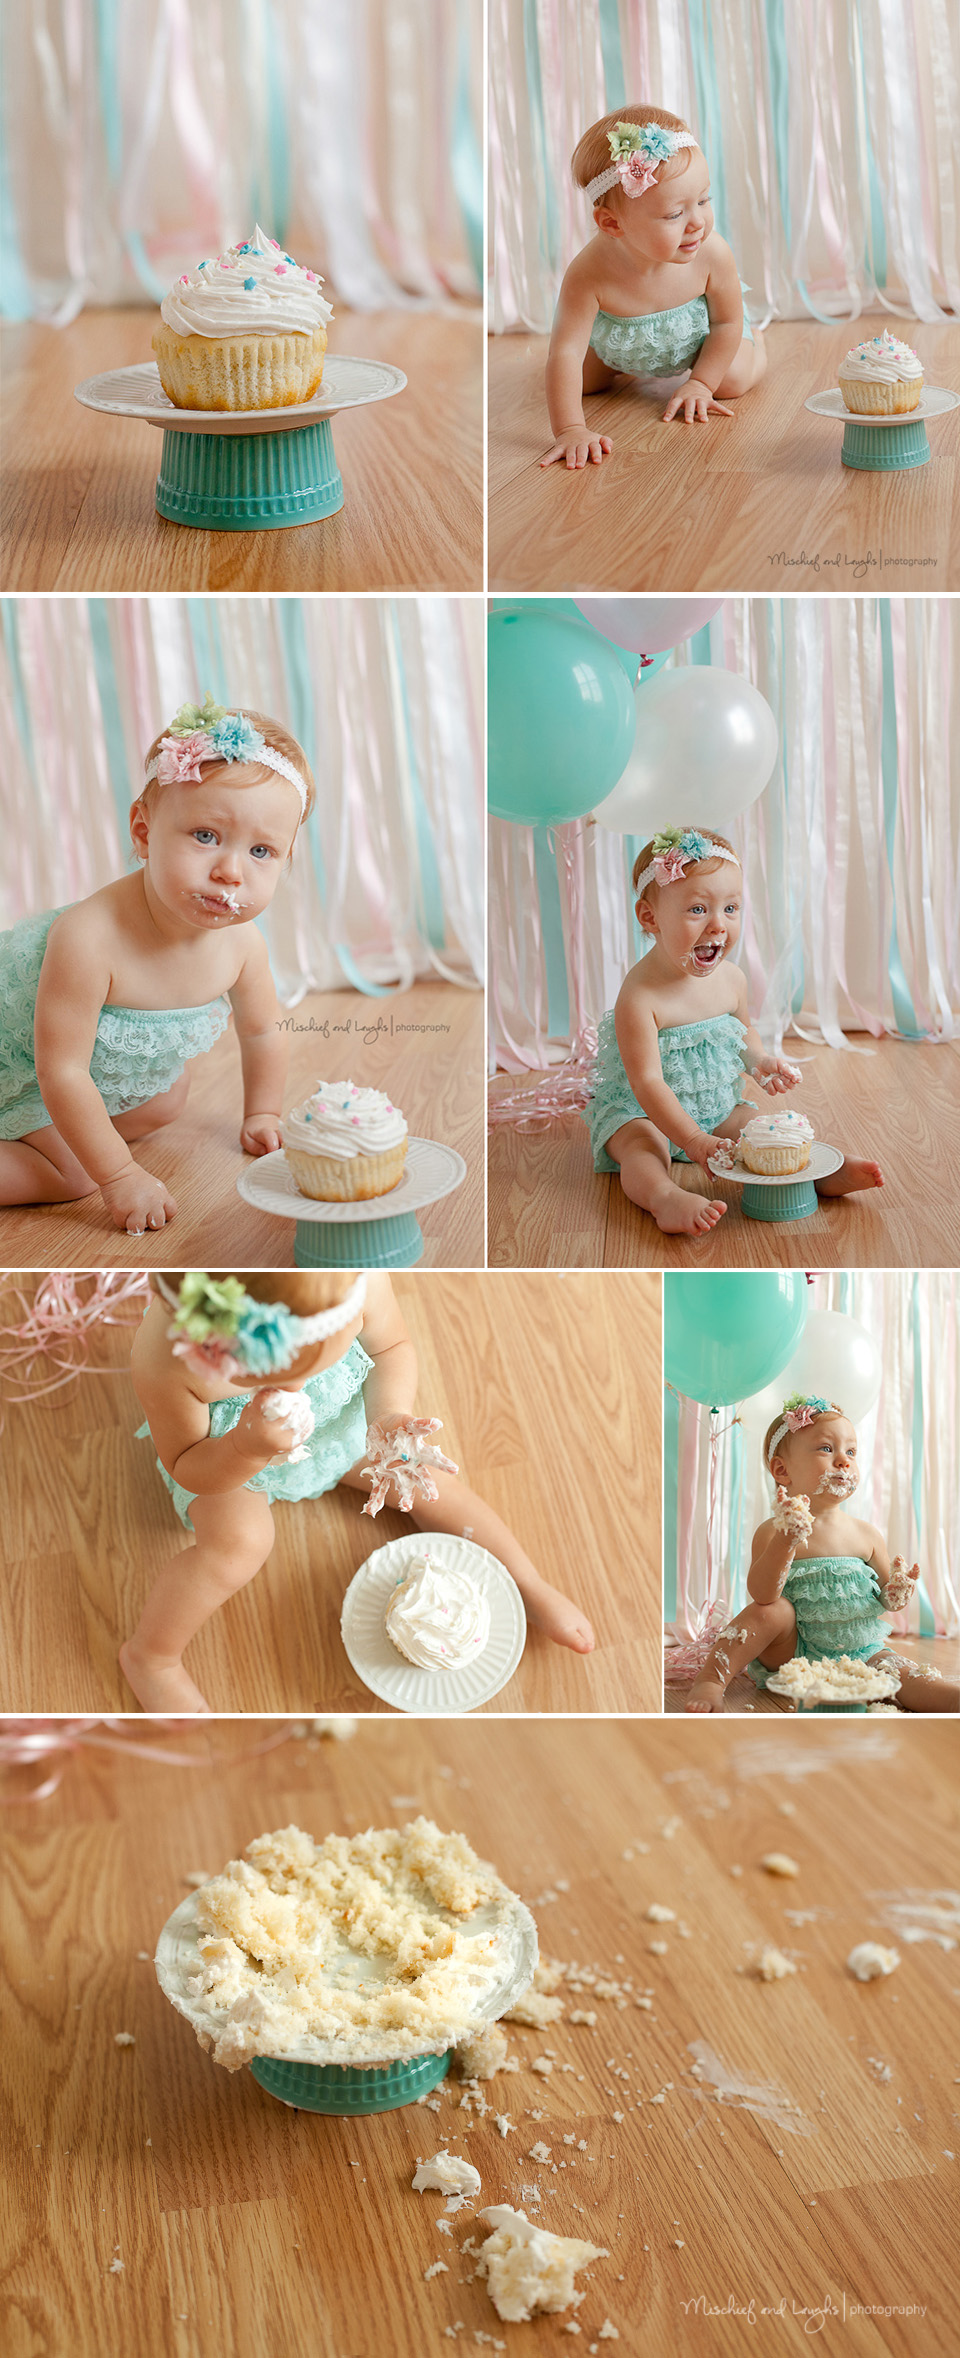 Pink and Teal Baby Girl Cake Smash, Mischief and Laughs, Cincinnati OH #cakesmash